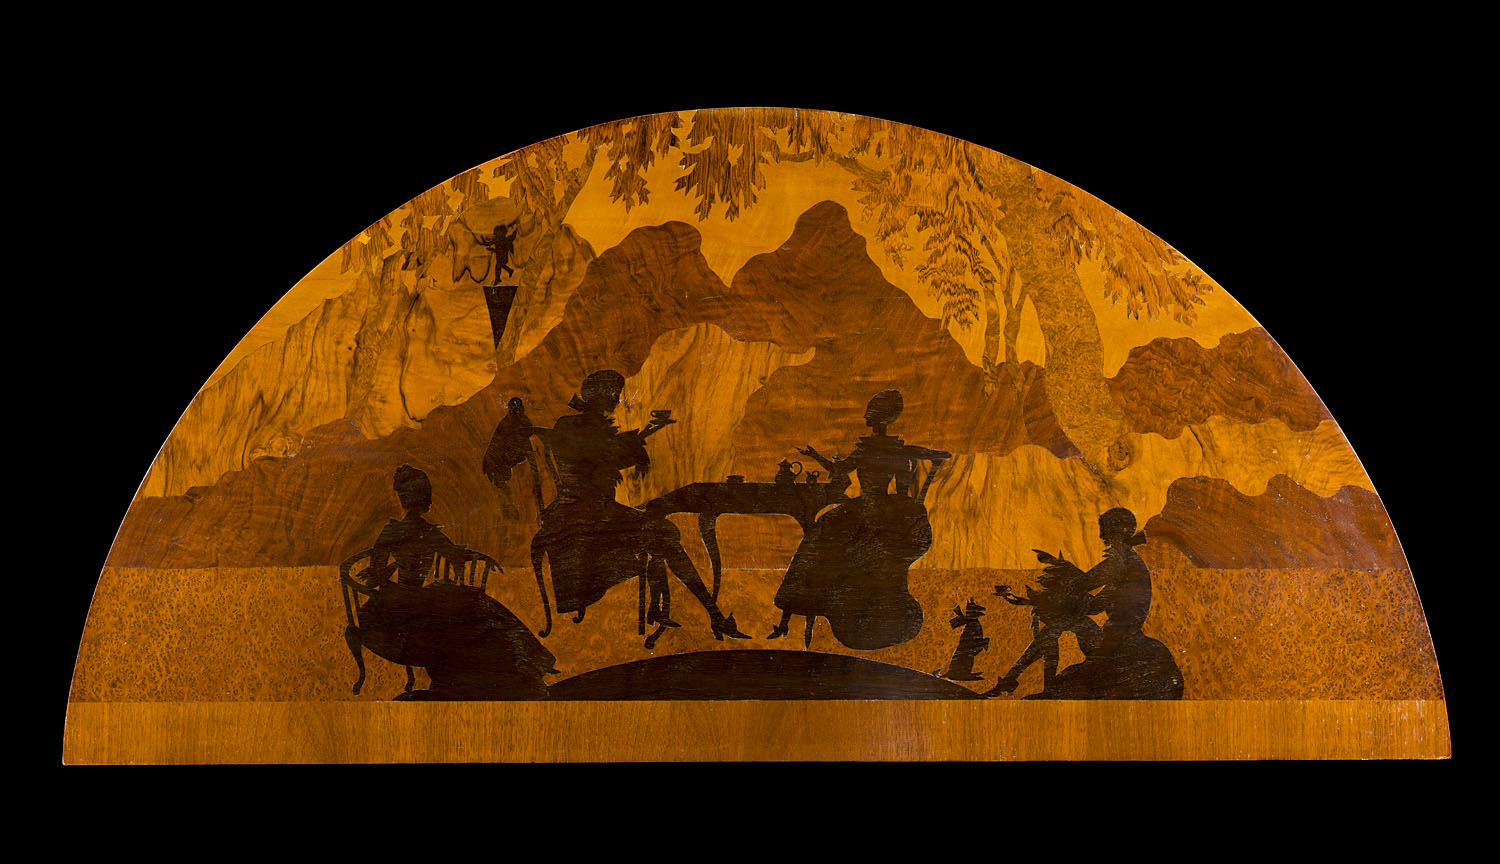 A Marquetry Wood Panel depicting a Fete Champetre Landscape